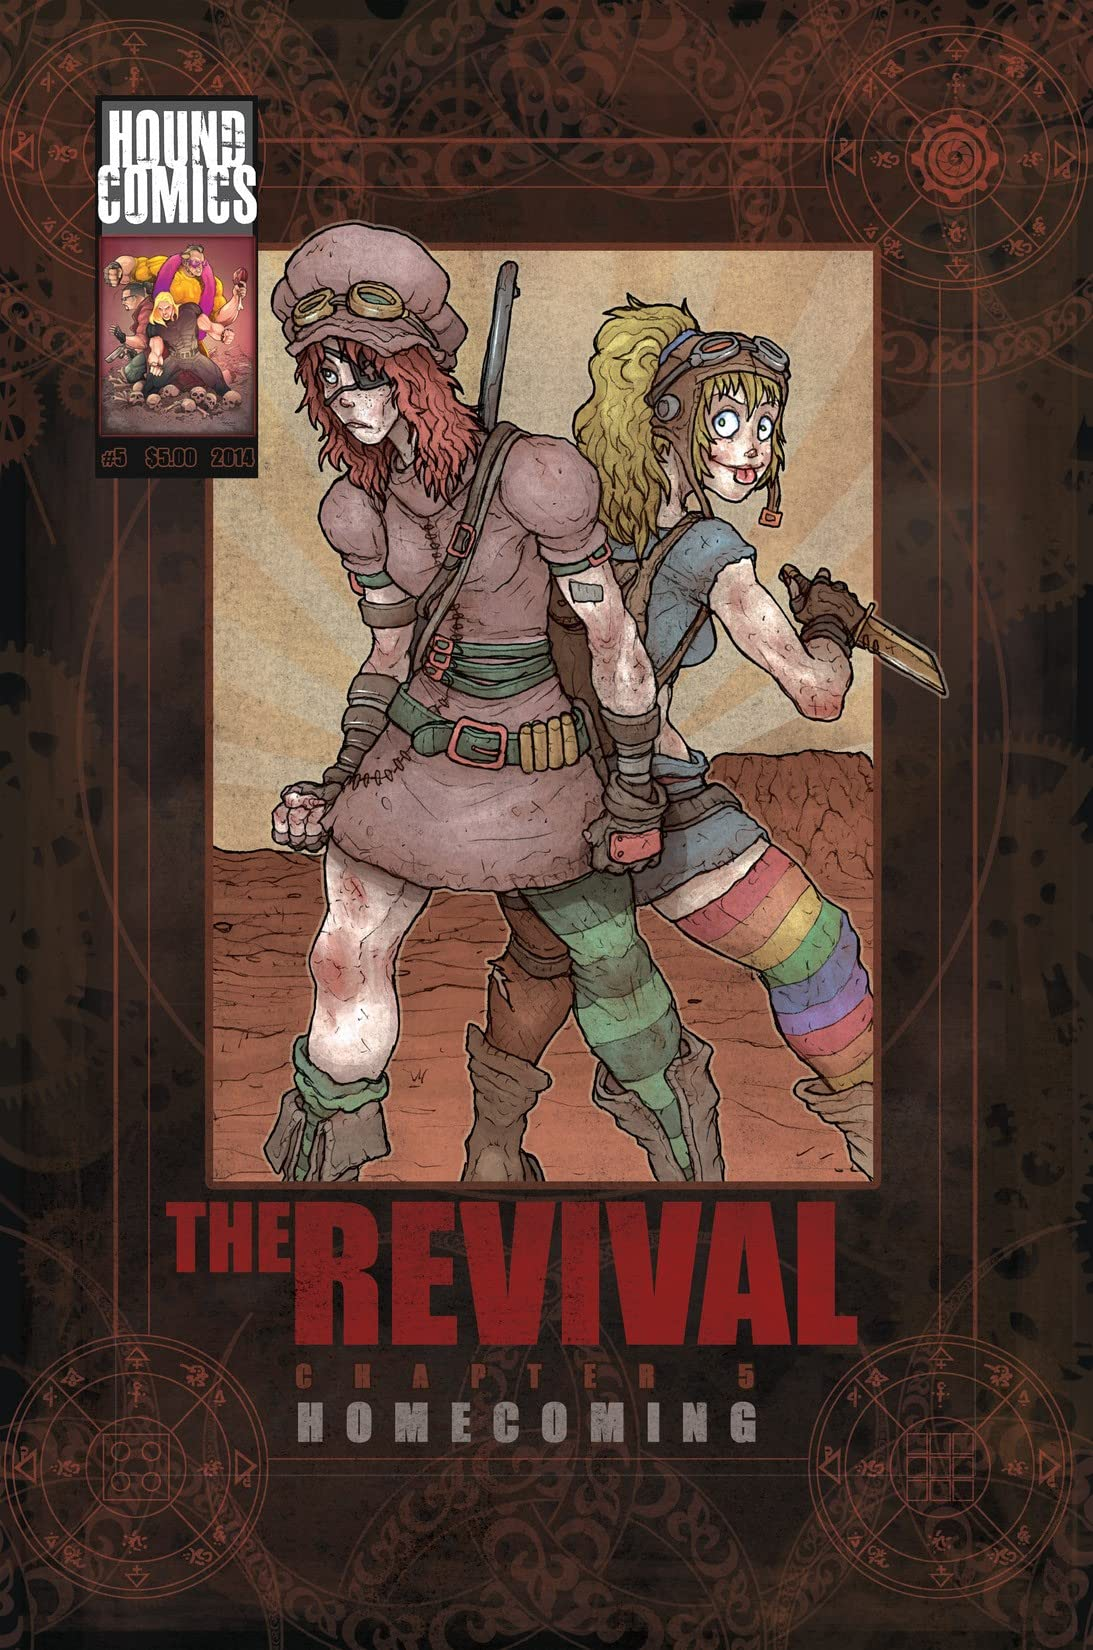 The Revival #5